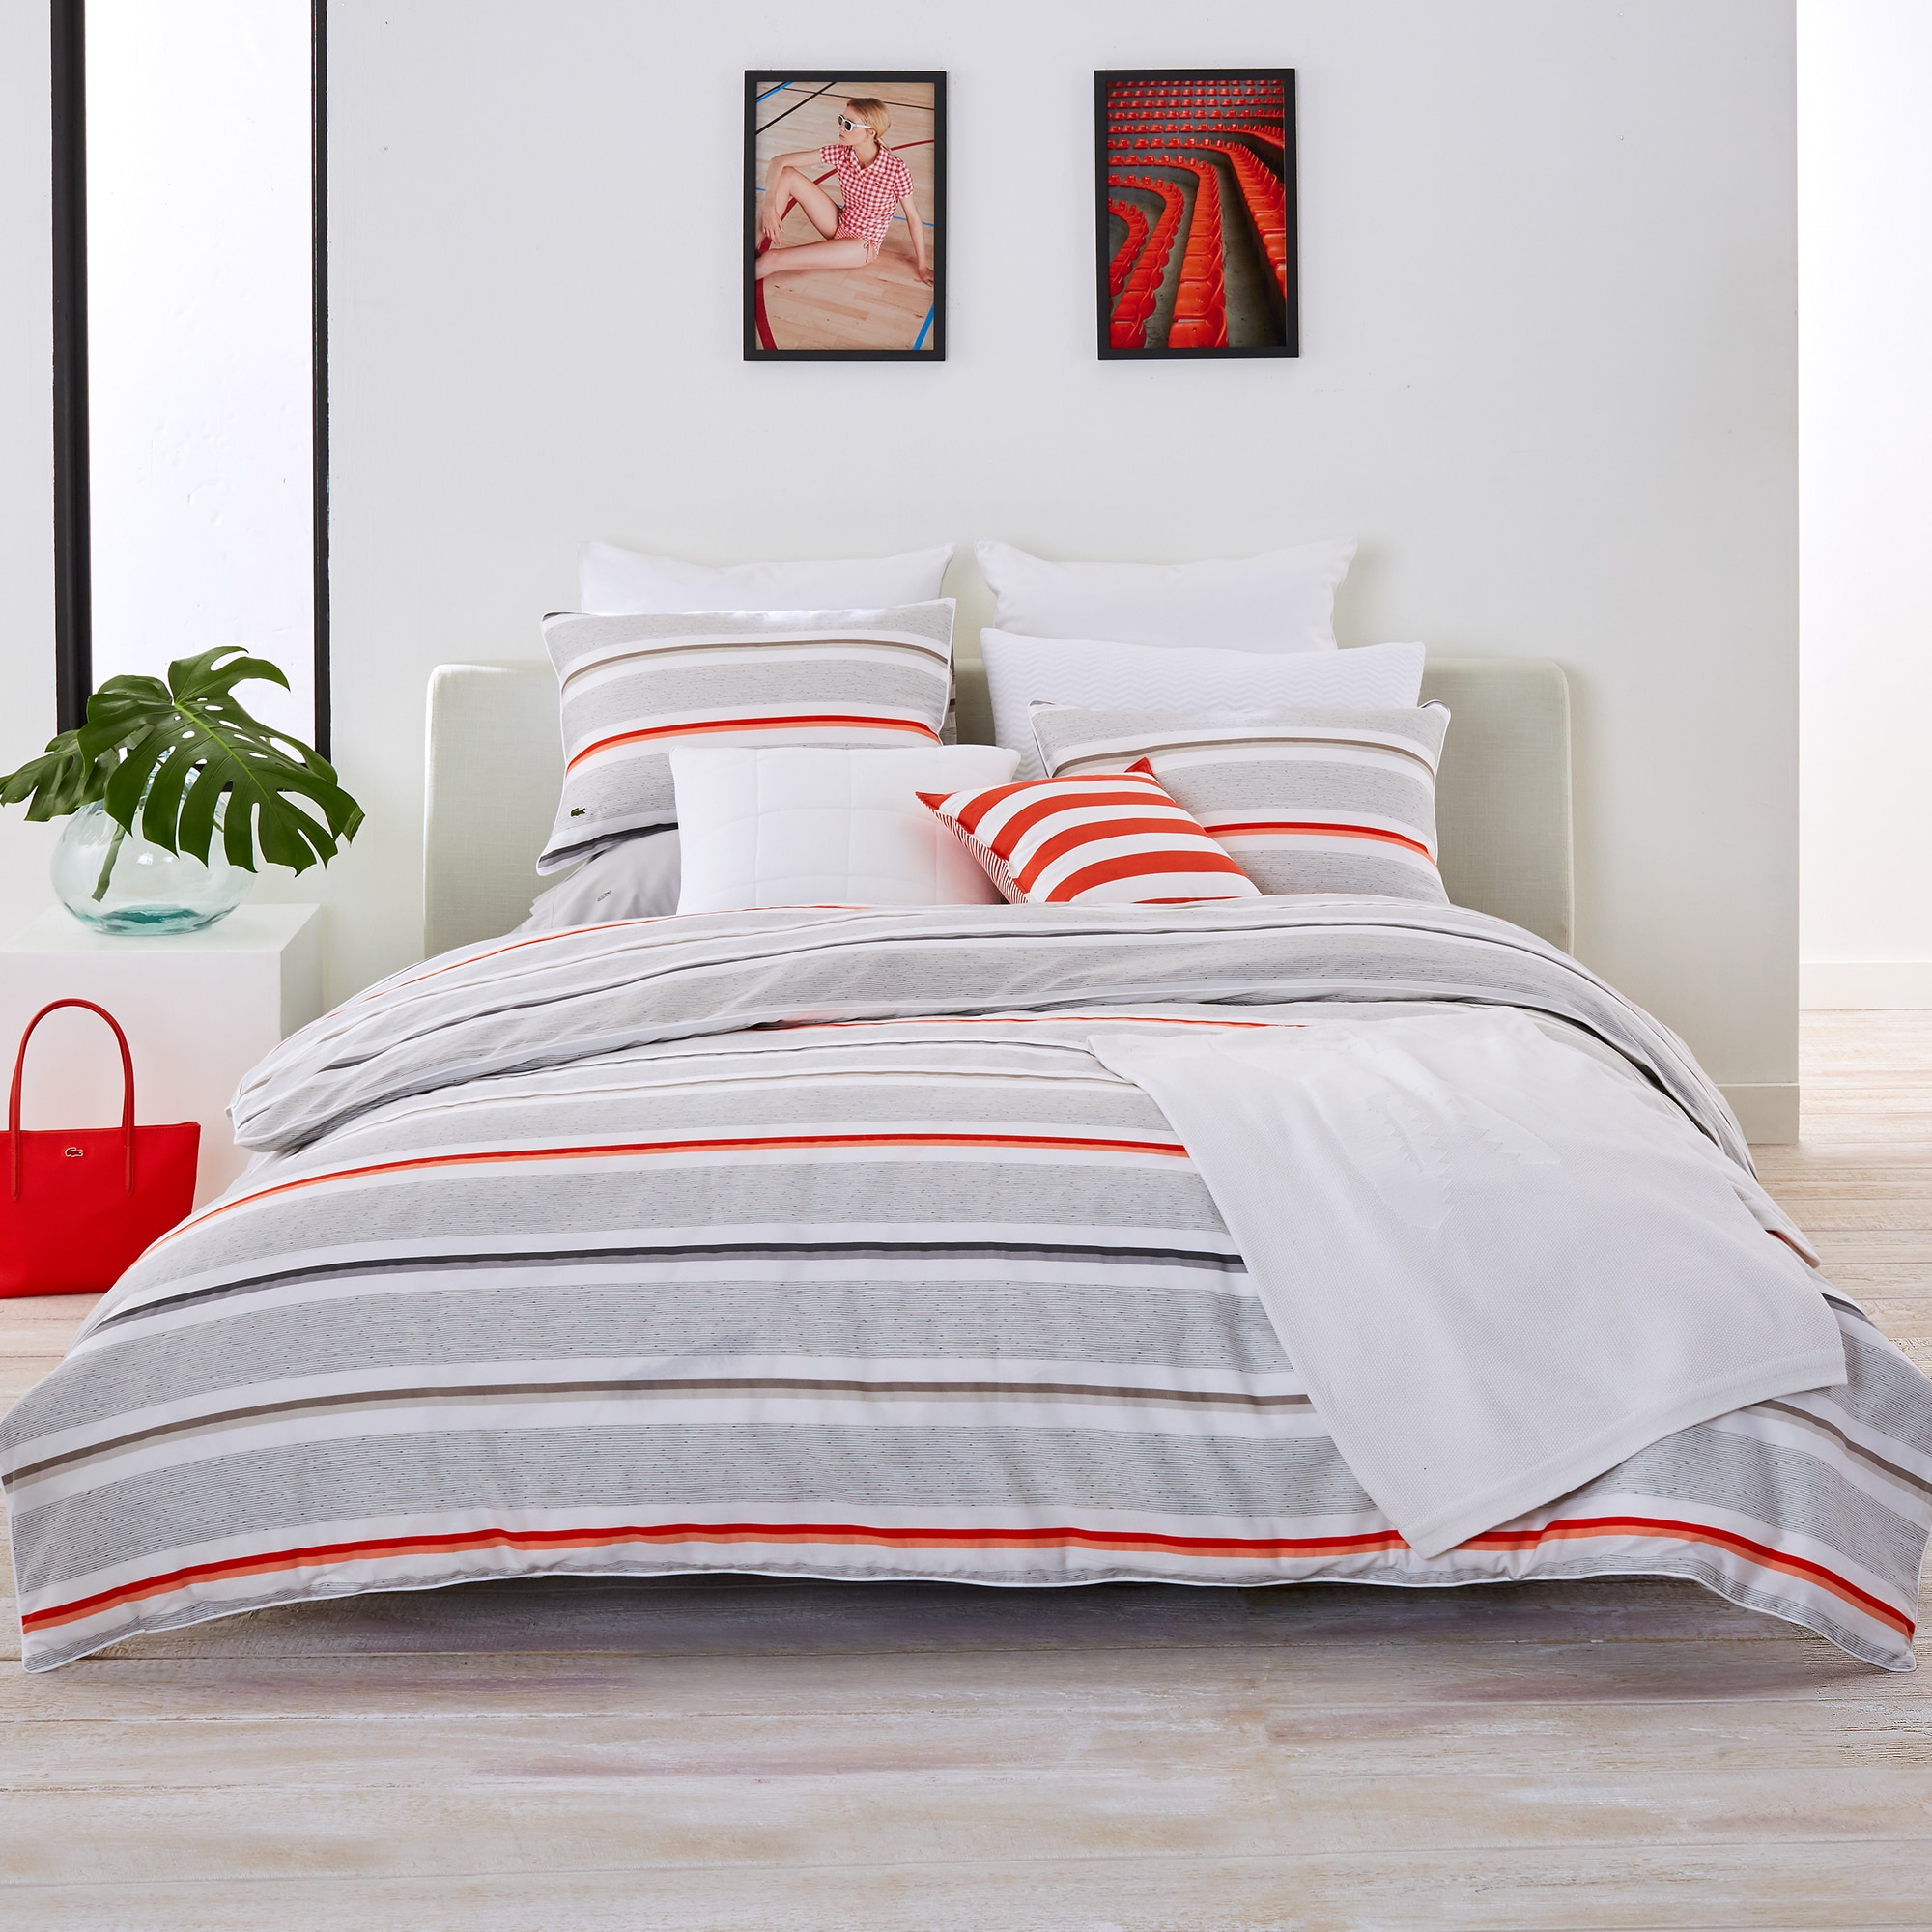 bedding and comforters | lacoste